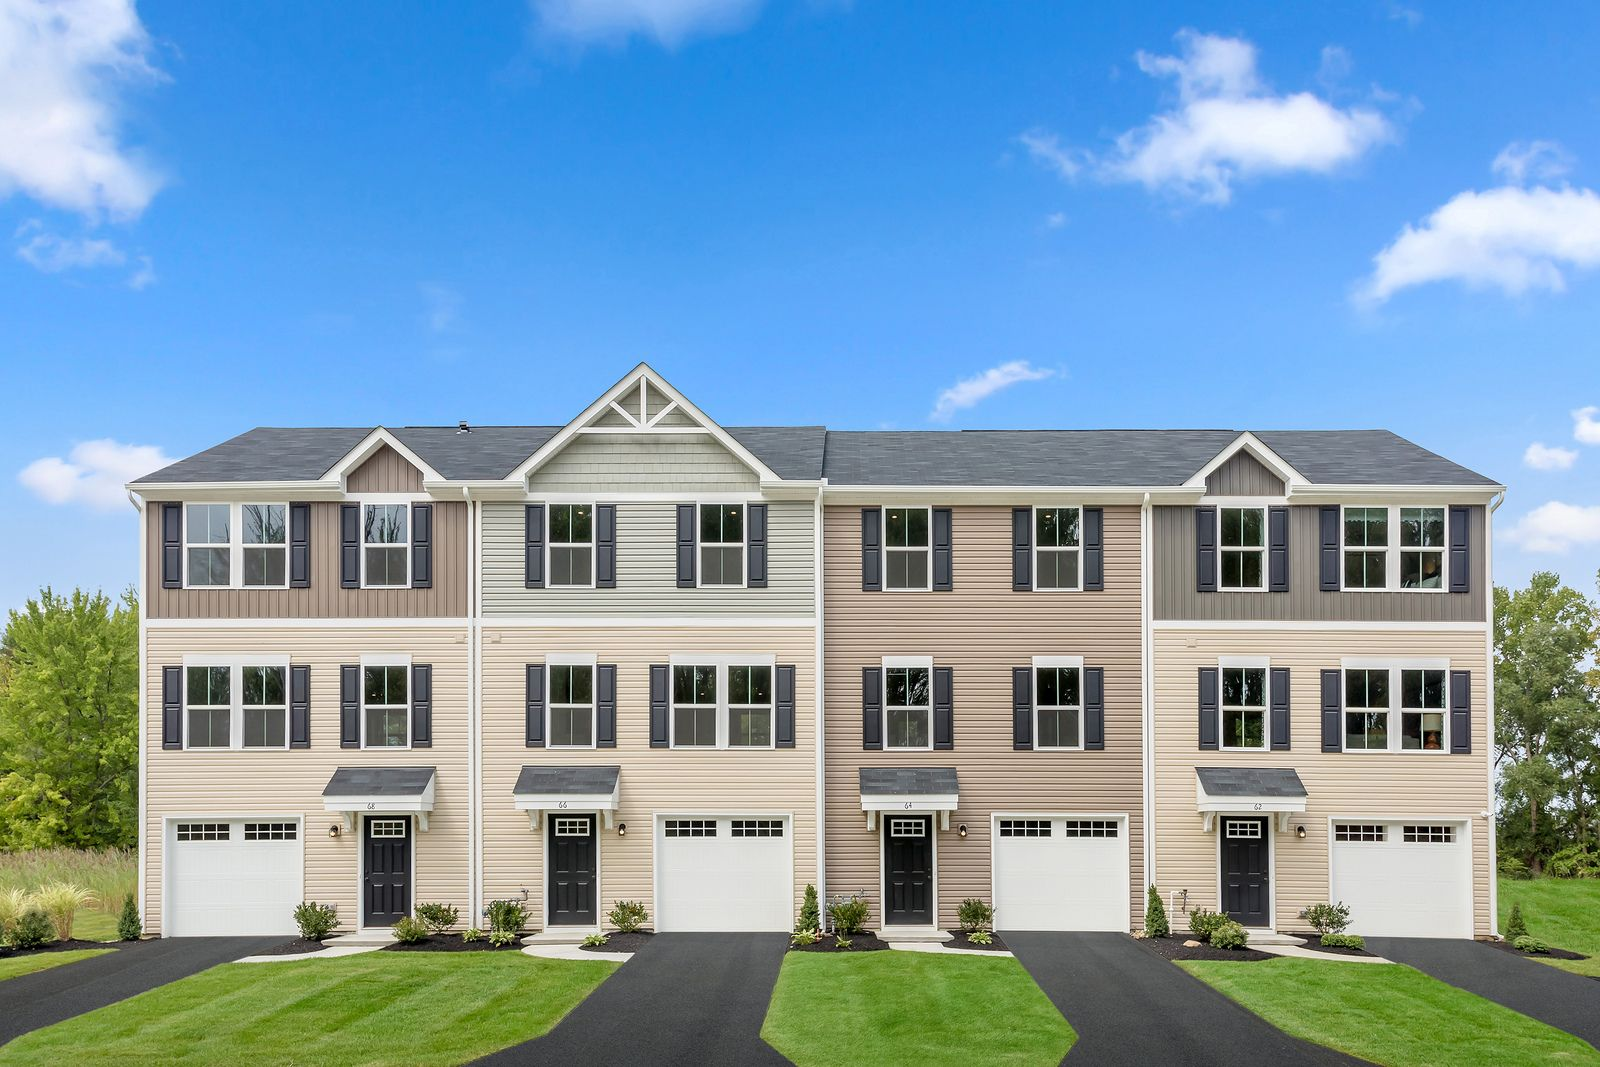 WELCOME TO FOXWOOD RIDGE:The lowest-priced new townhomes in Montgomery County with all appliances included and finished basements available - own for less than rent! USDA financing is available.Learn more today.